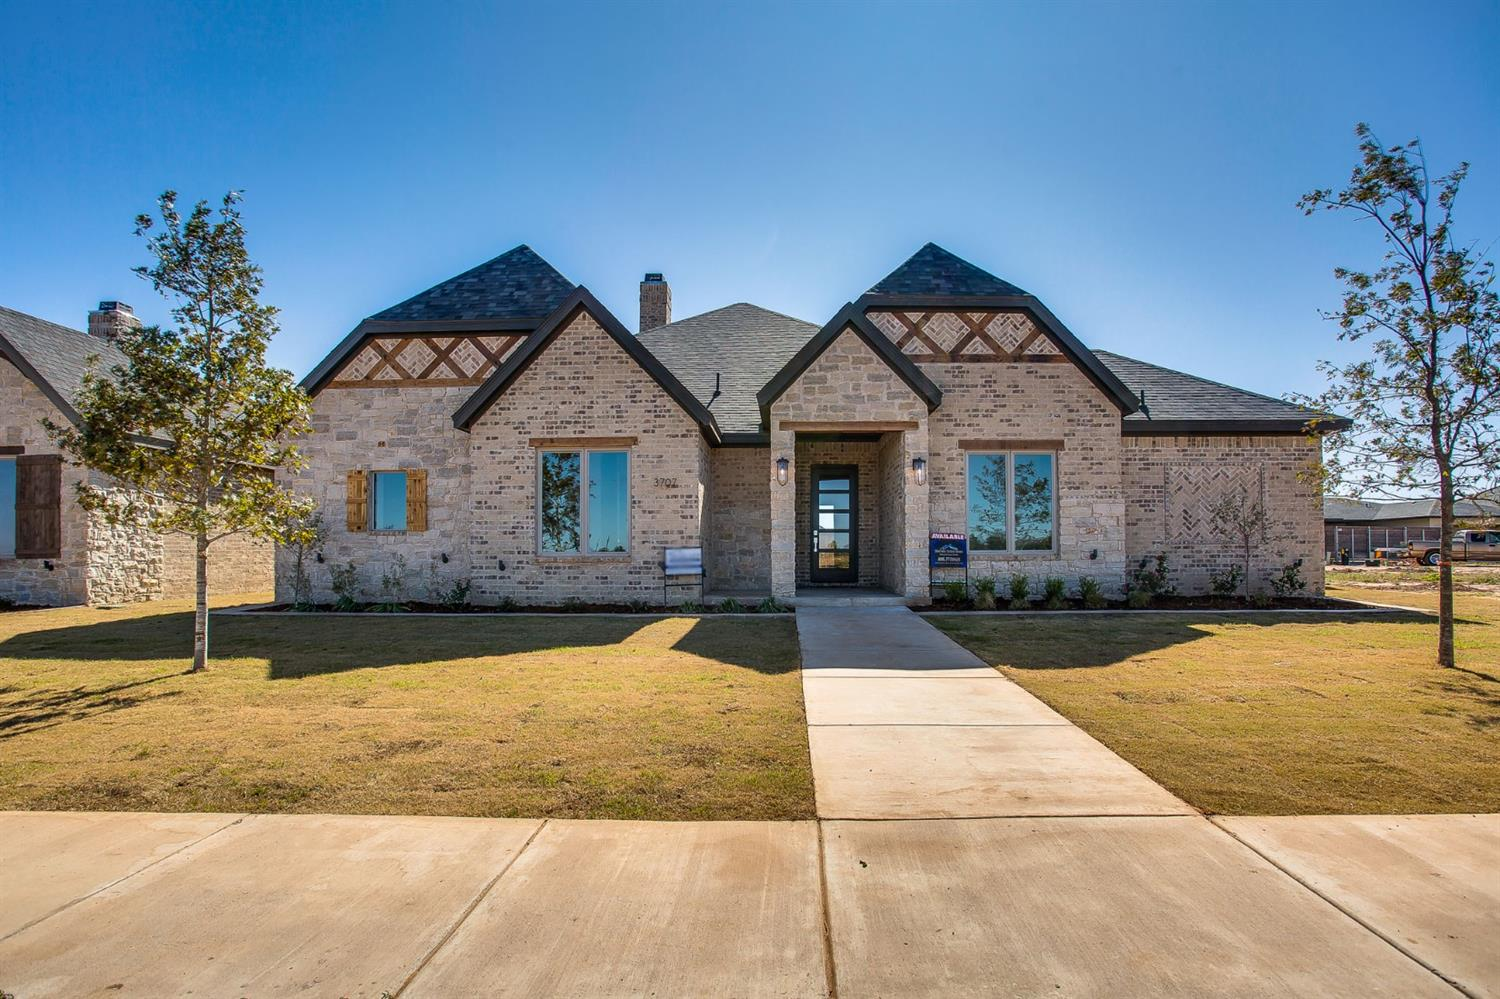 Welcome to Hatton Place! This stunning 4/3/2 was built by award winning Clearview Custom Homes, and features a large open concept with custom finishes throughout! Hatton Place is located in the highly sought after Cooper School District, and conveniently located near many shops and restaurants!    Estimated completion date October 2019.